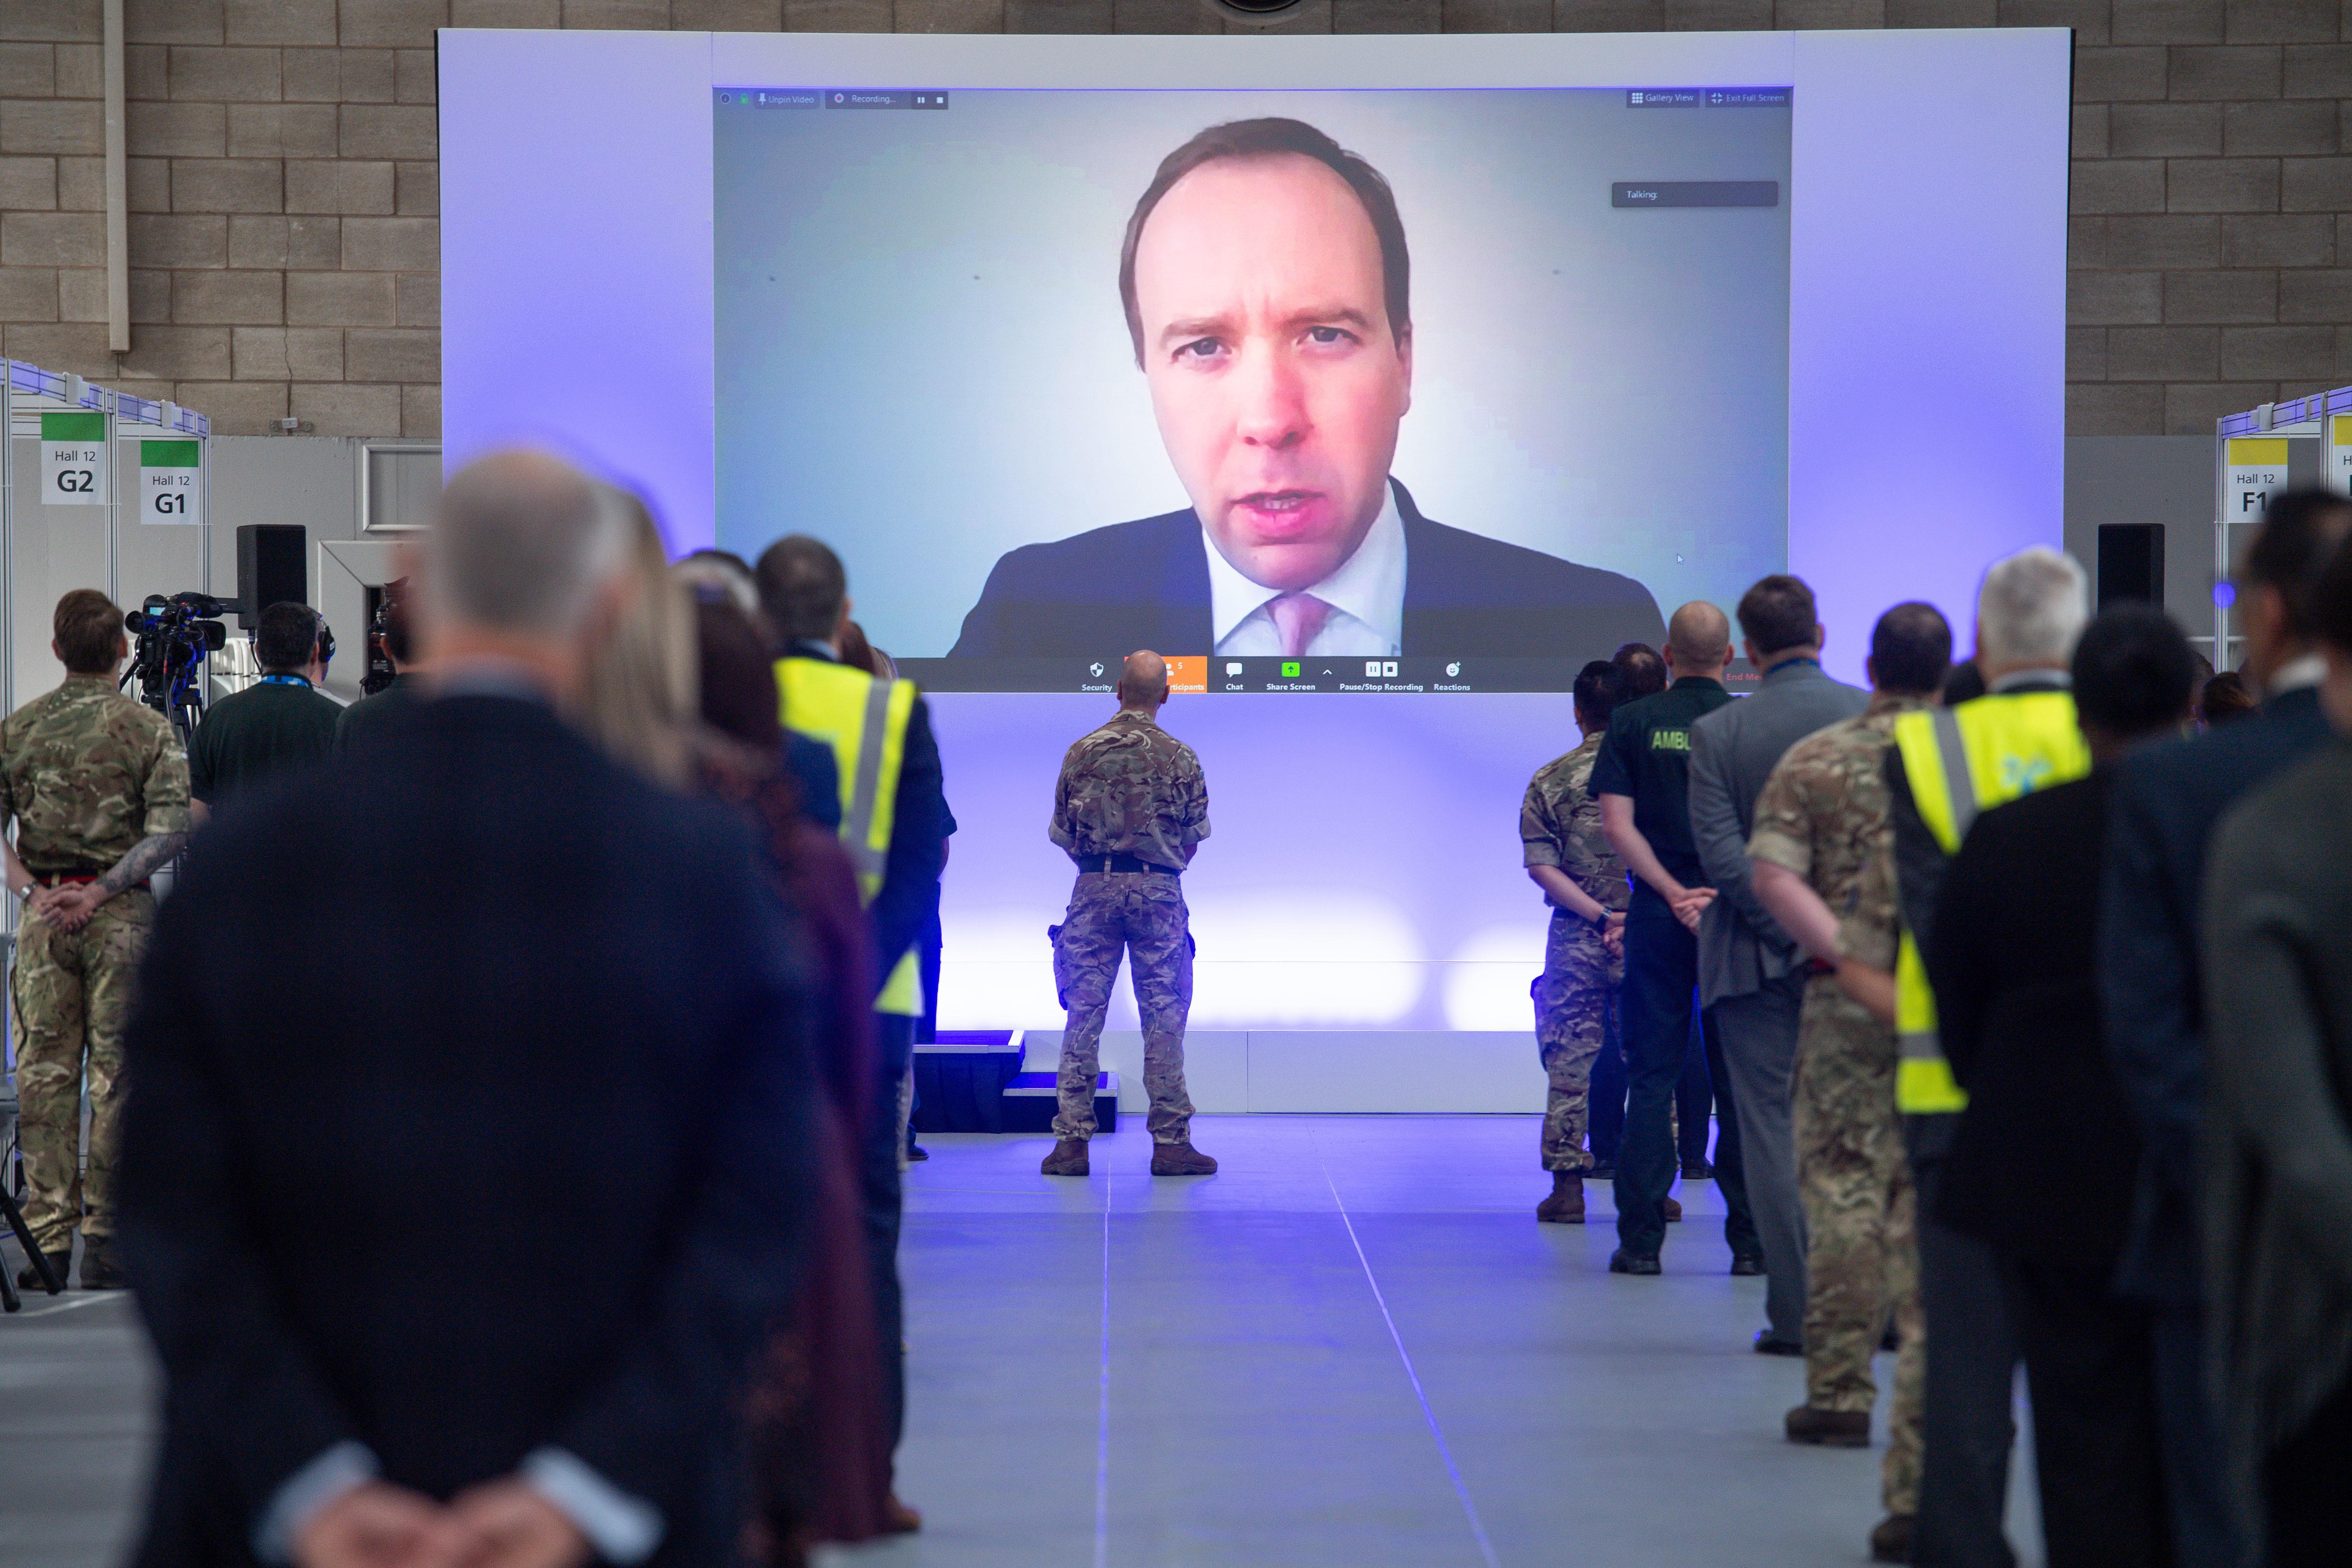 EMBARGOED TO 1330 Thursday April 16, 2020. Health Secretary Matt Hancock speaks via videolink at the opening of the NHS Nightingale Hospital Birmingham, in the National Exhibition Centre (NEC).